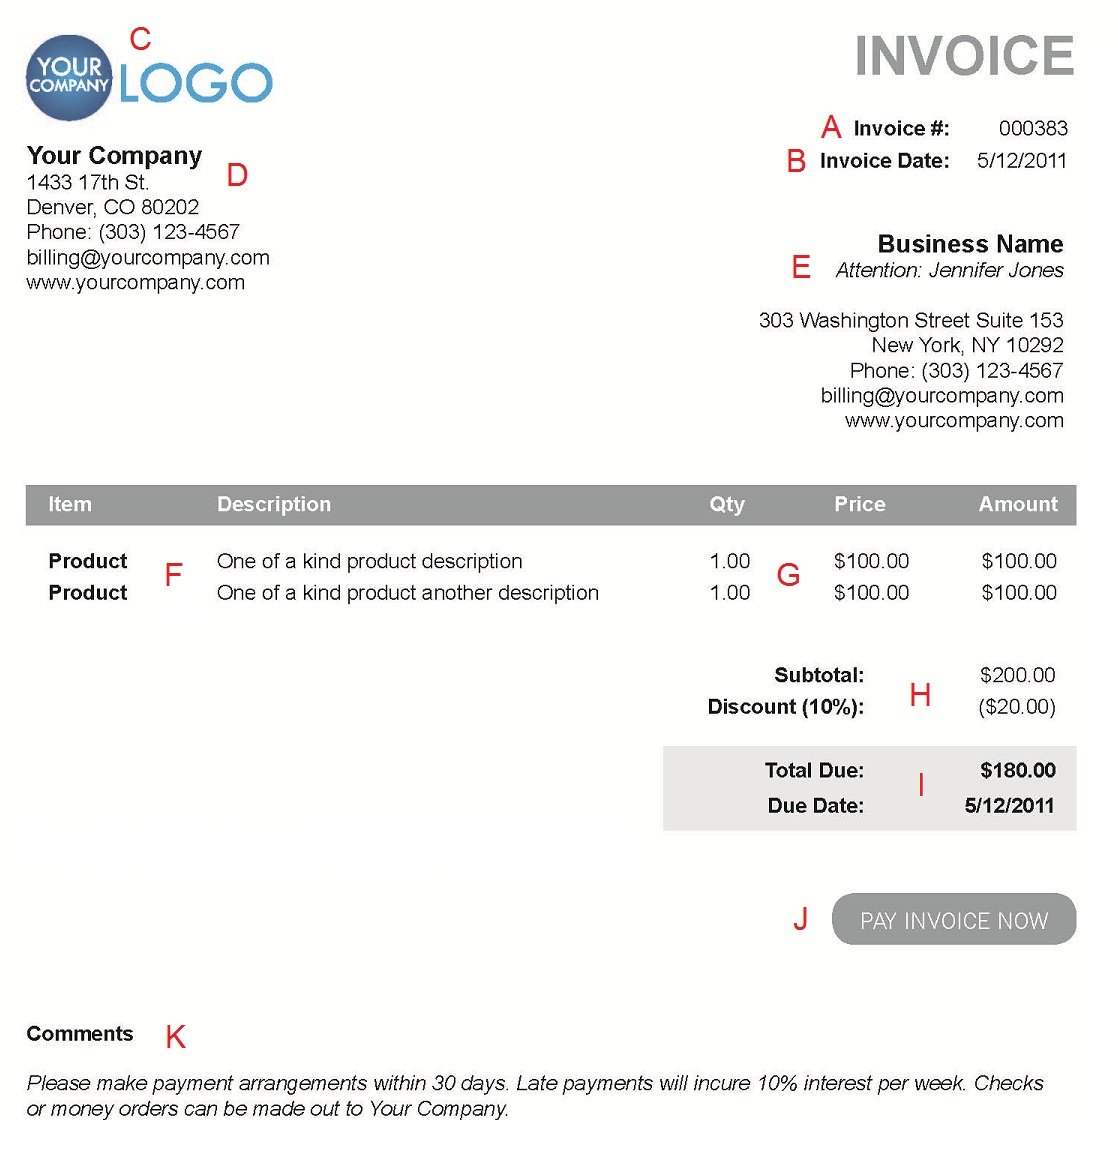 Ultrablogus  Pleasant The  Different Sections Of An Electronic Payment Invoice With Lovable A  With Delightful Template Tax Invoice Also Marketing Invoice Template In Addition How To Do An Invoice On Word And Company Invoice Forms As Well As Due Invoice Additionally  Lexus Rx  Invoice Price From Paysimplecom With Ultrablogus  Lovable The  Different Sections Of An Electronic Payment Invoice With Delightful A  And Pleasant Template Tax Invoice Also Marketing Invoice Template In Addition How To Do An Invoice On Word From Paysimplecom